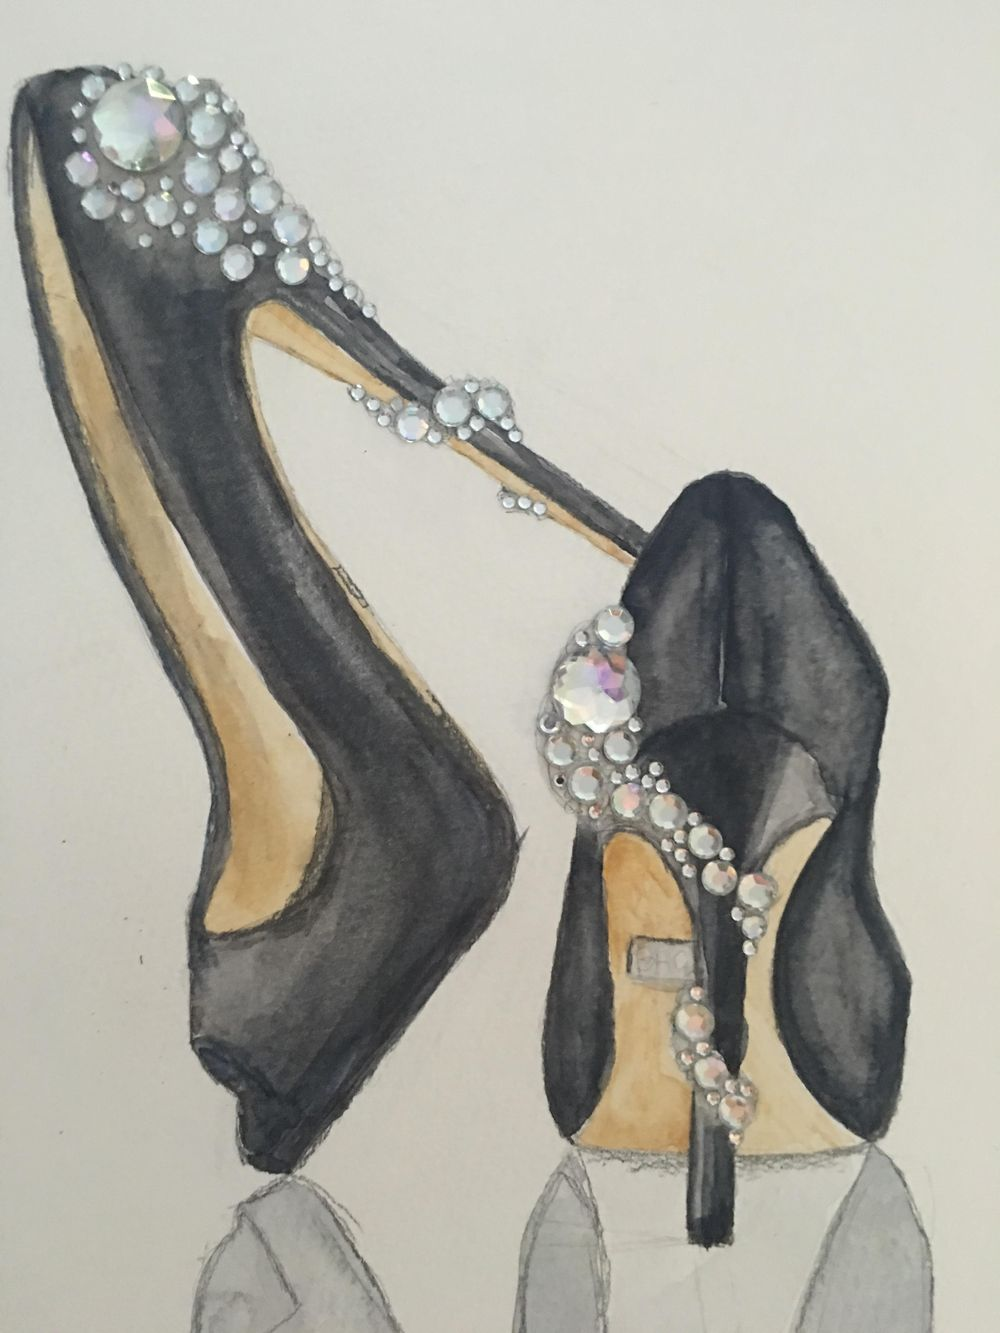 Basic Watercolor - Illustrate Shoes - image 1 - student project